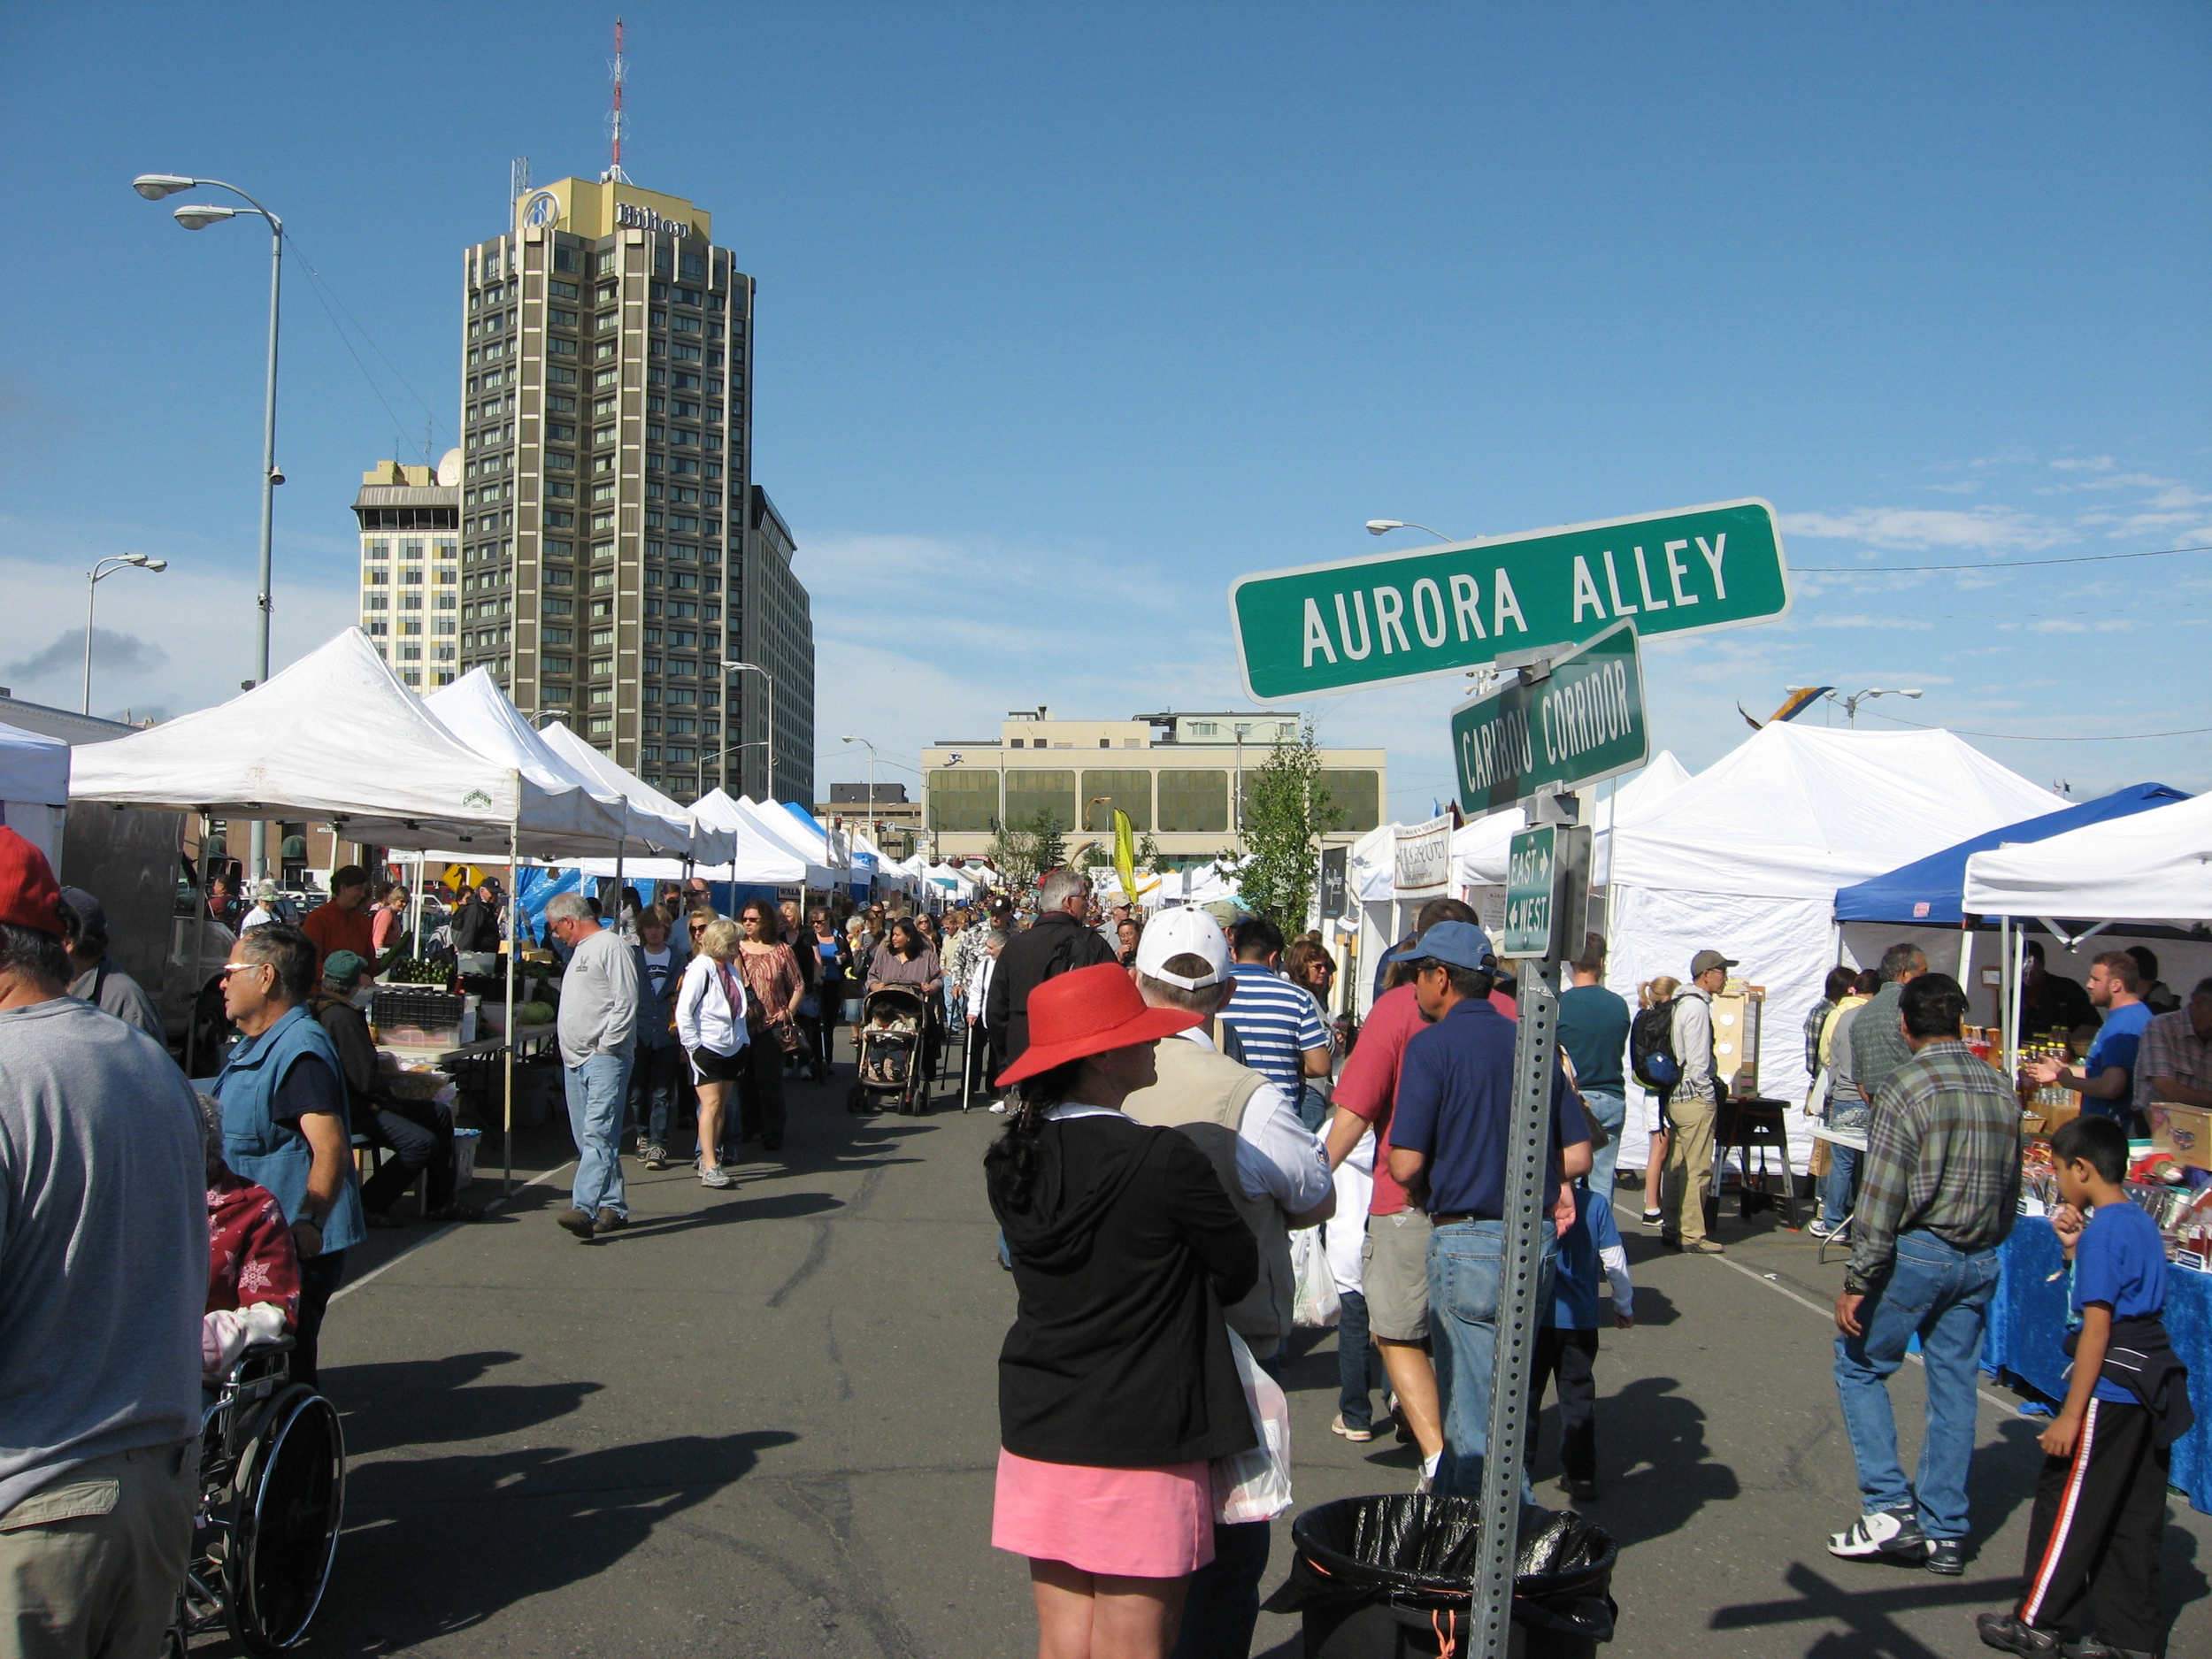 Anchorage has a wonderful downtown outdoor market that is not to be missed - food, crafts and entertainment